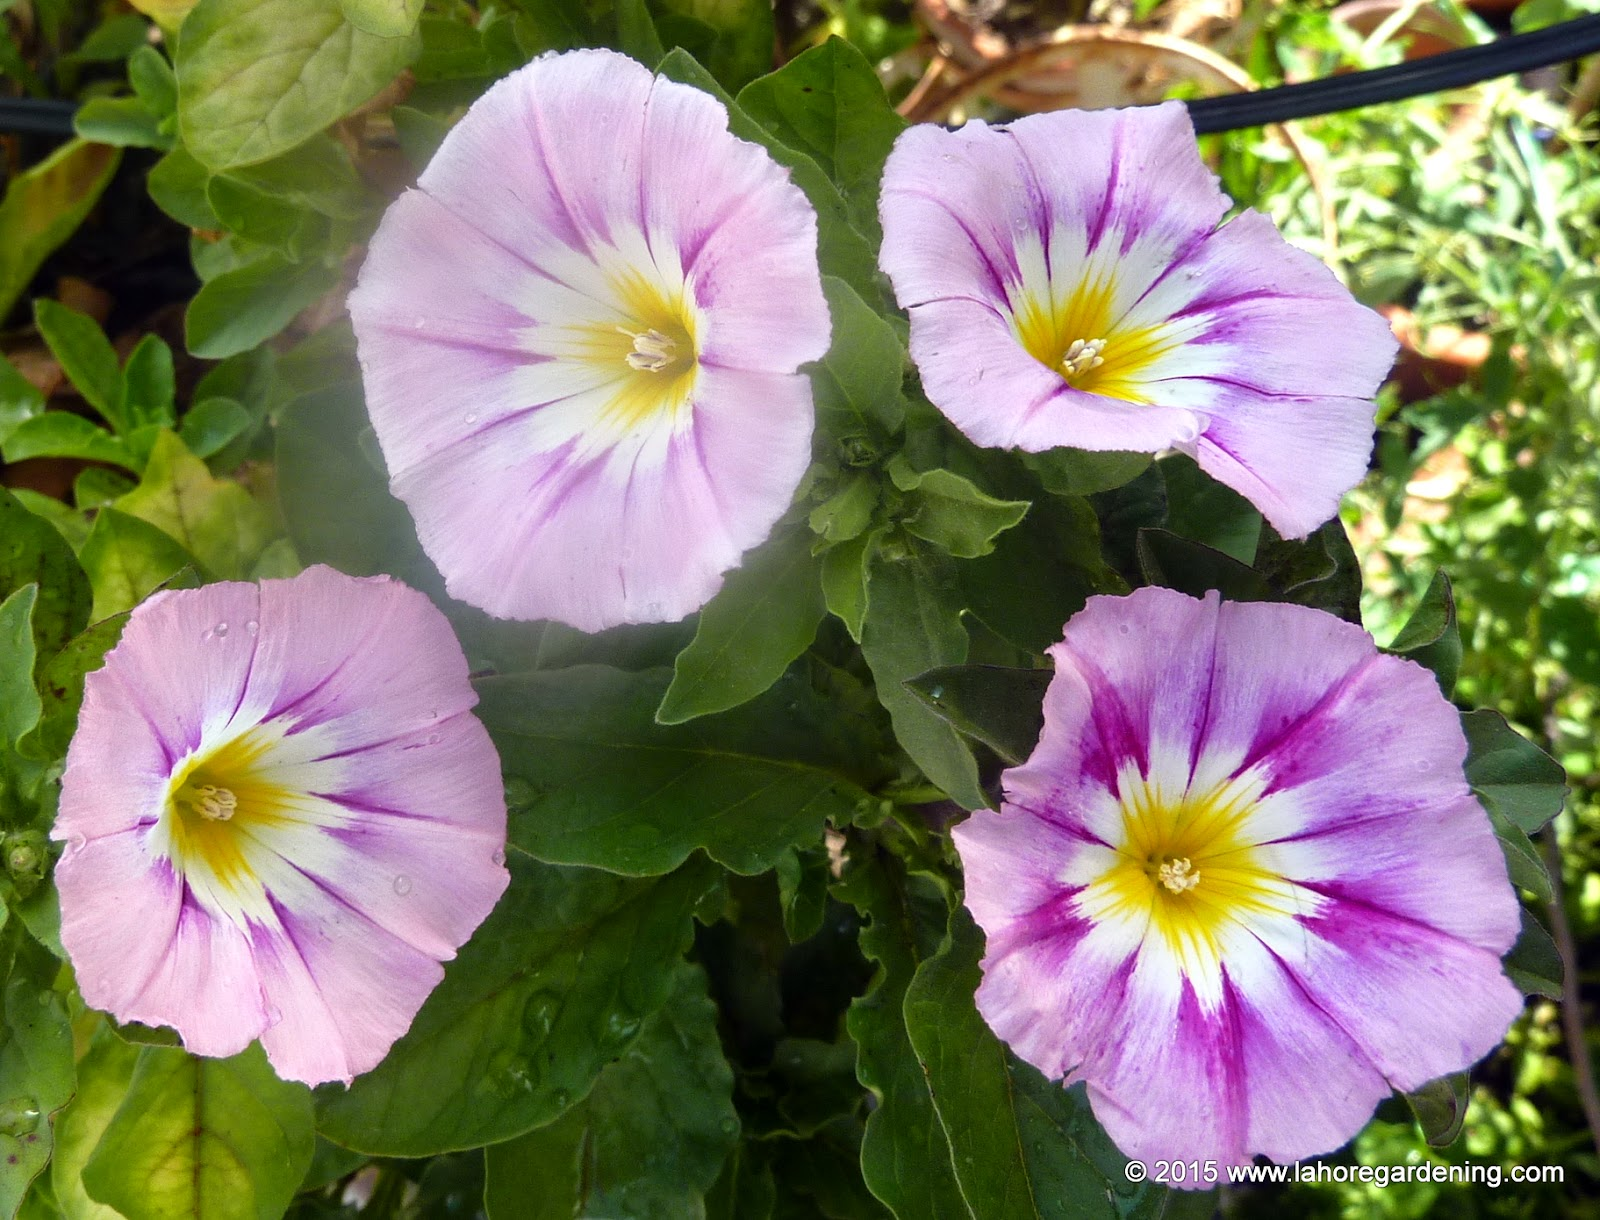 Tricolor morning glory